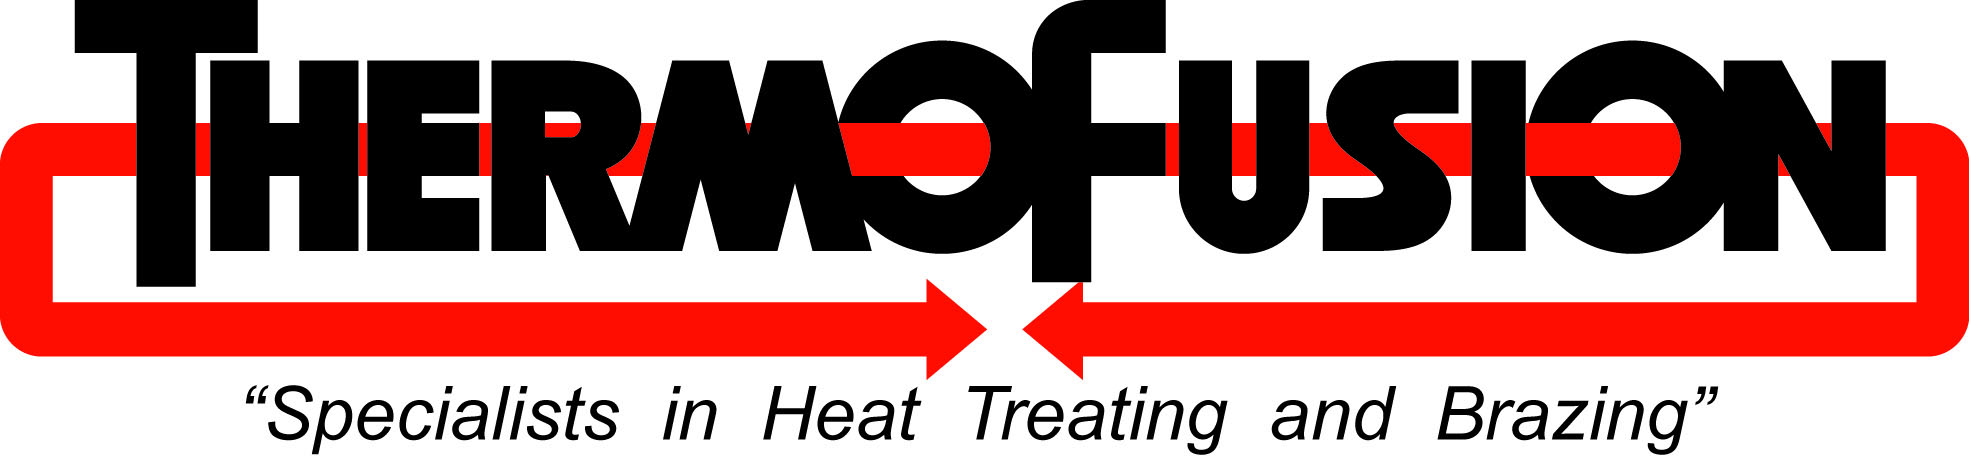 ThermoFusion Inc.